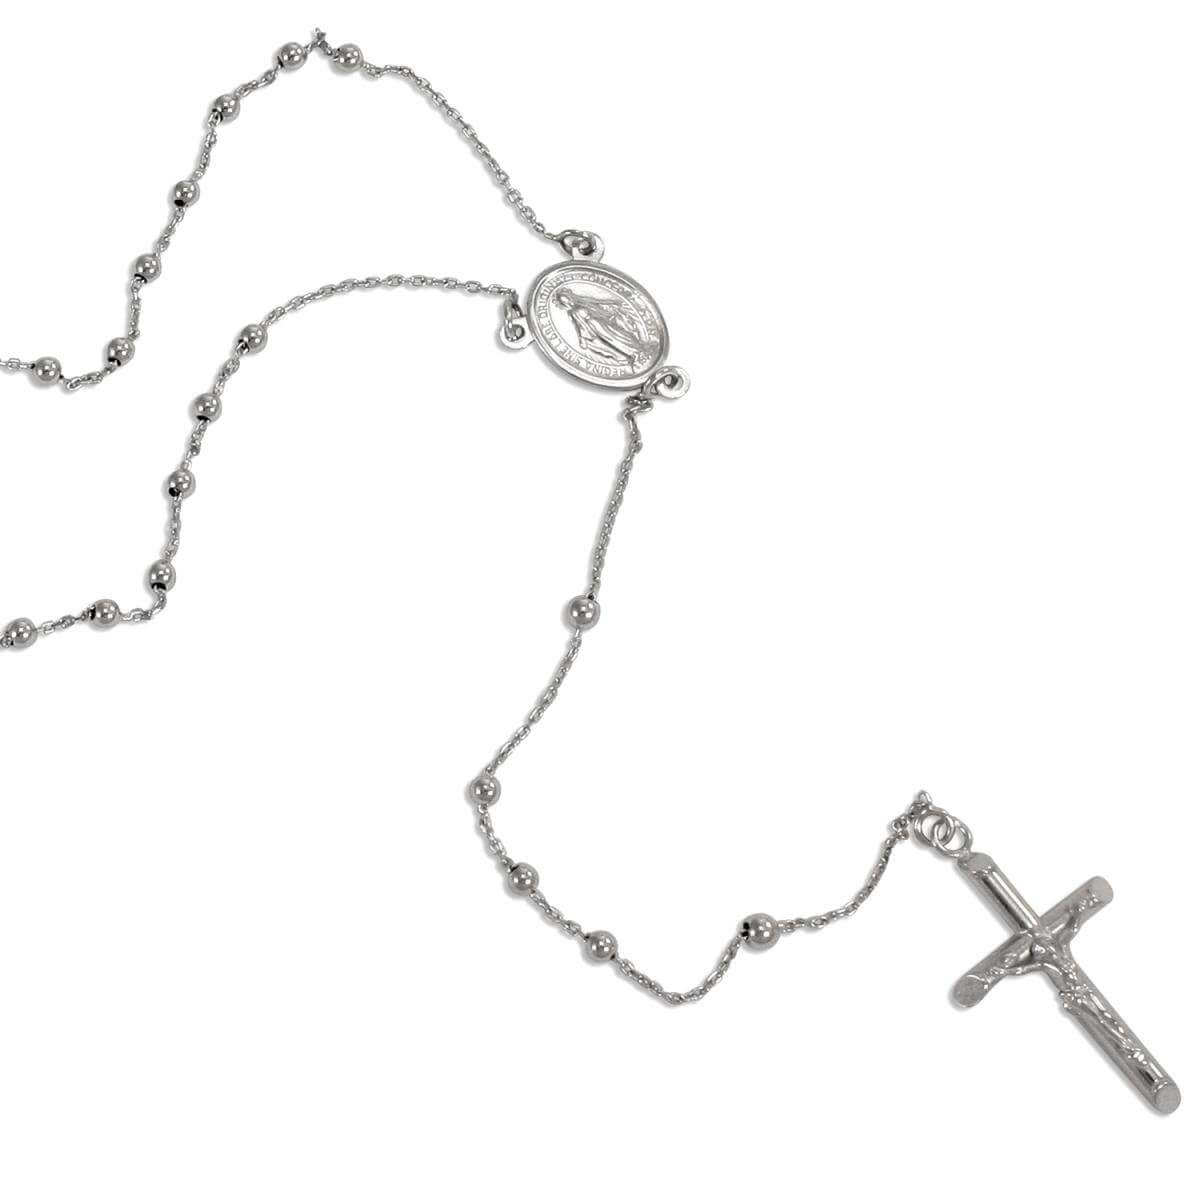 9ct White Gold Rosary Necklace